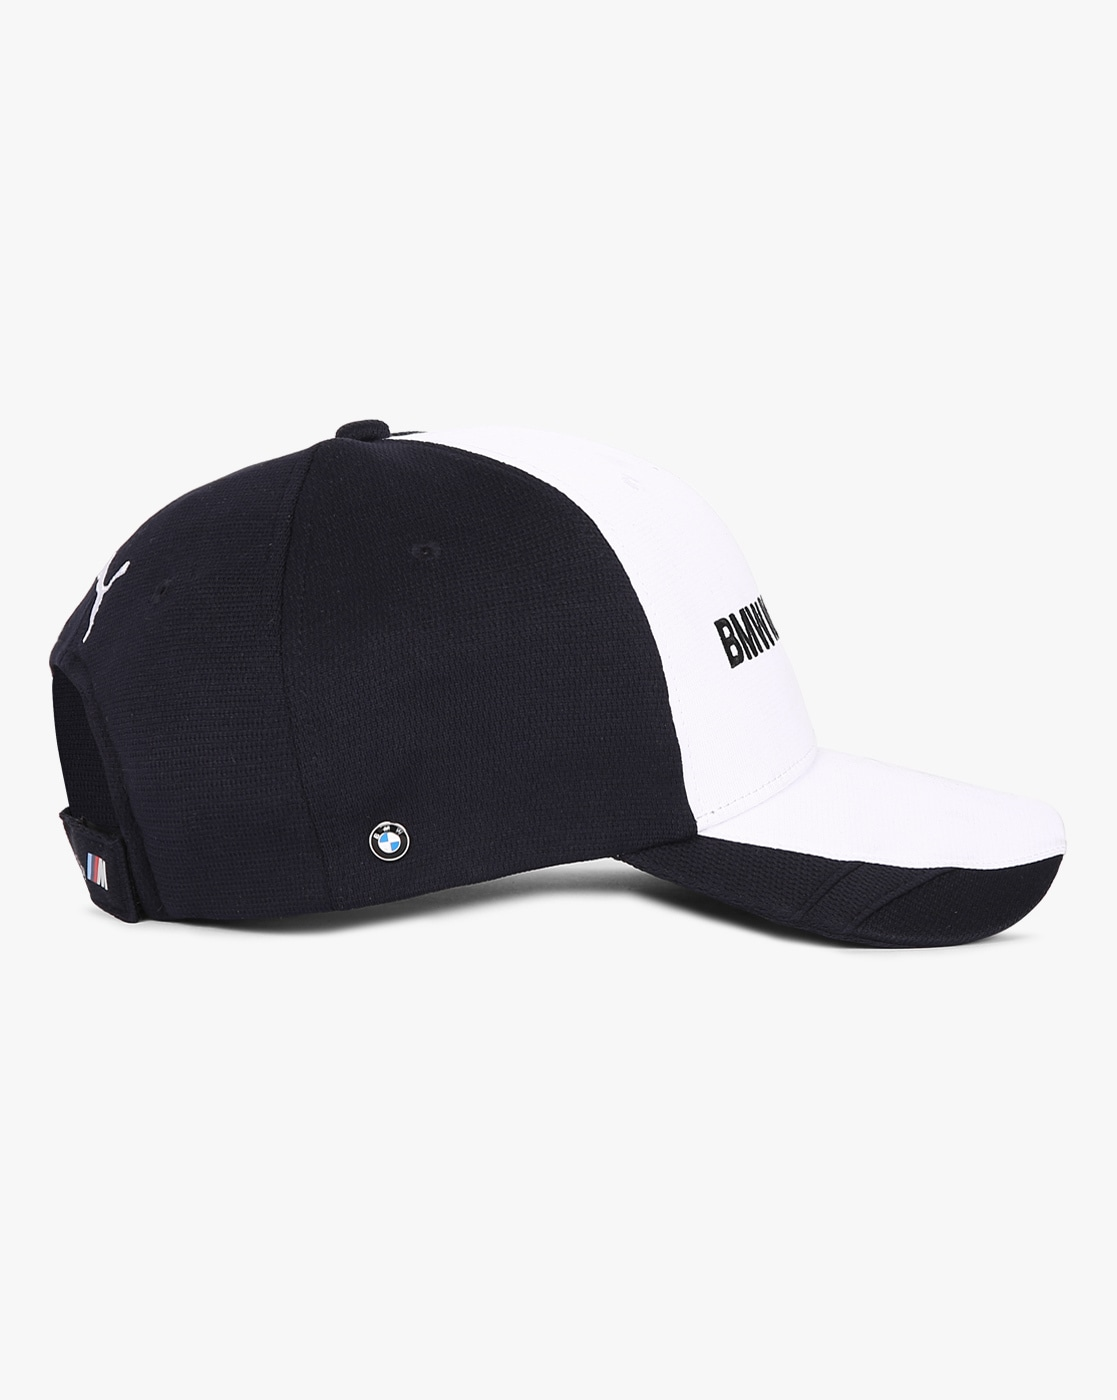 ... bmw motorsport unisex navy blue red cap caps for unisex 1673137 myntra  discount code for buy navy blue white caps hats for men by puma online ajio  713ab ... 9a76ad62dd9c